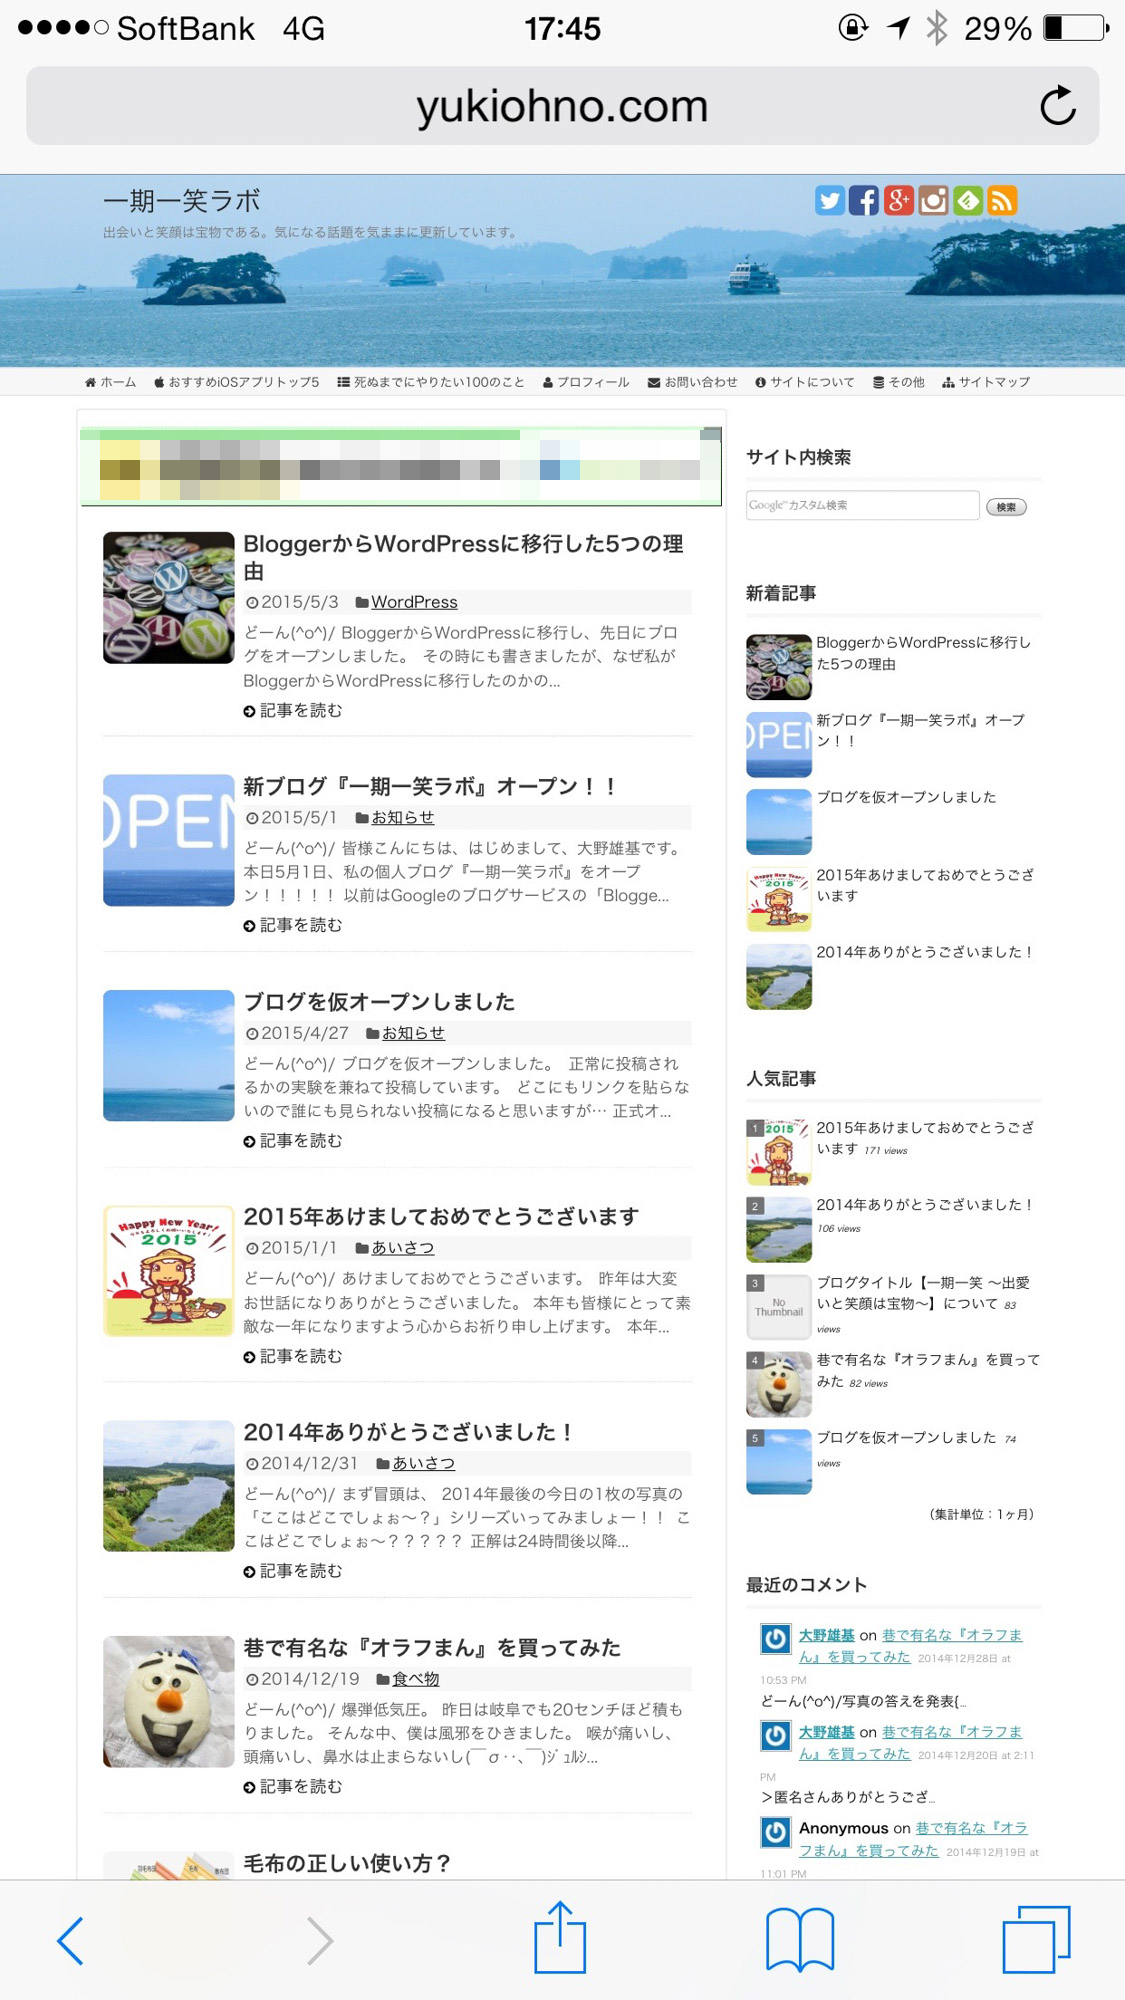 browser-wp-4248